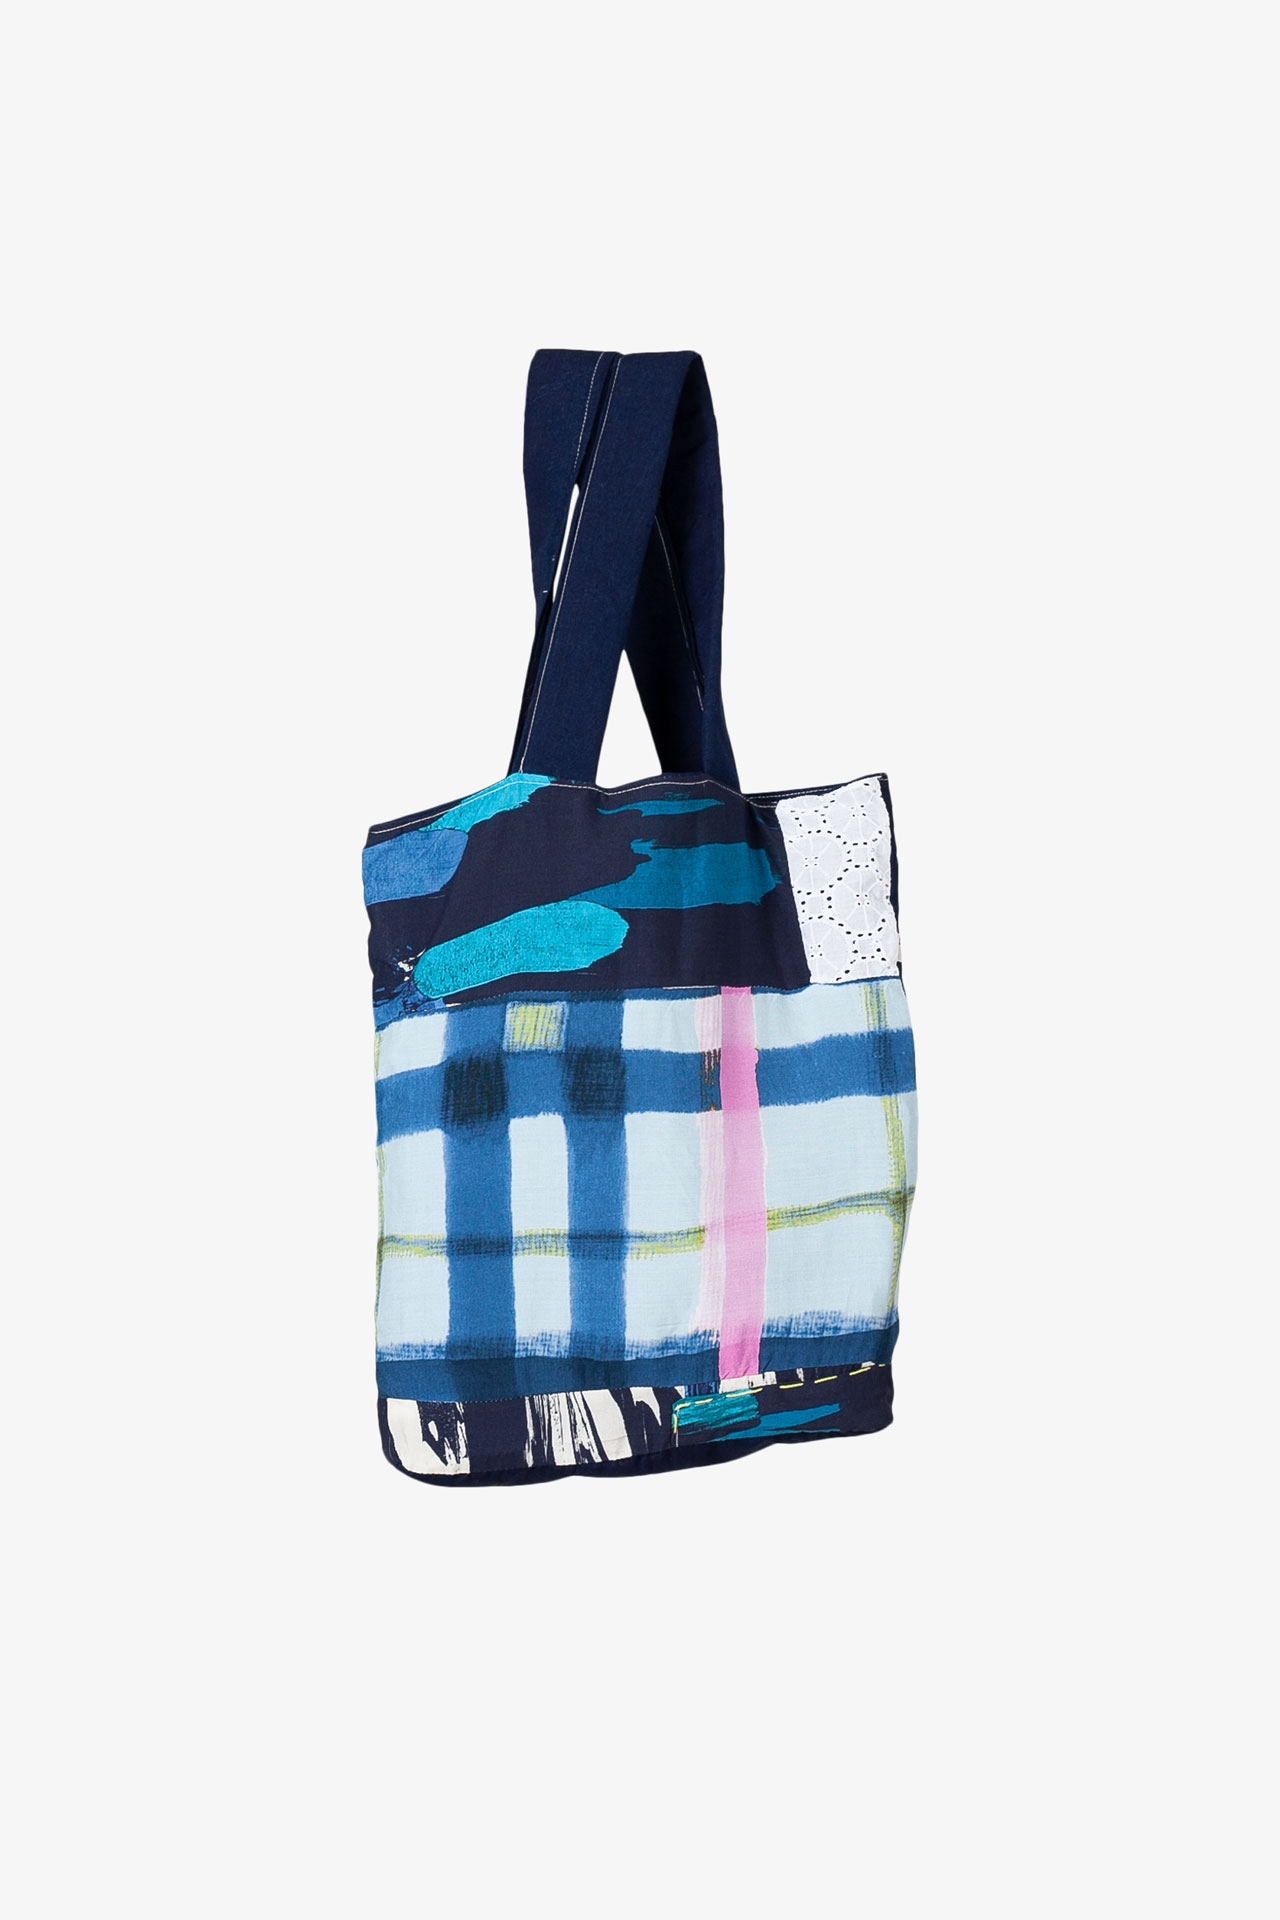 Tote Bag Patchwork Broderie Anglaise